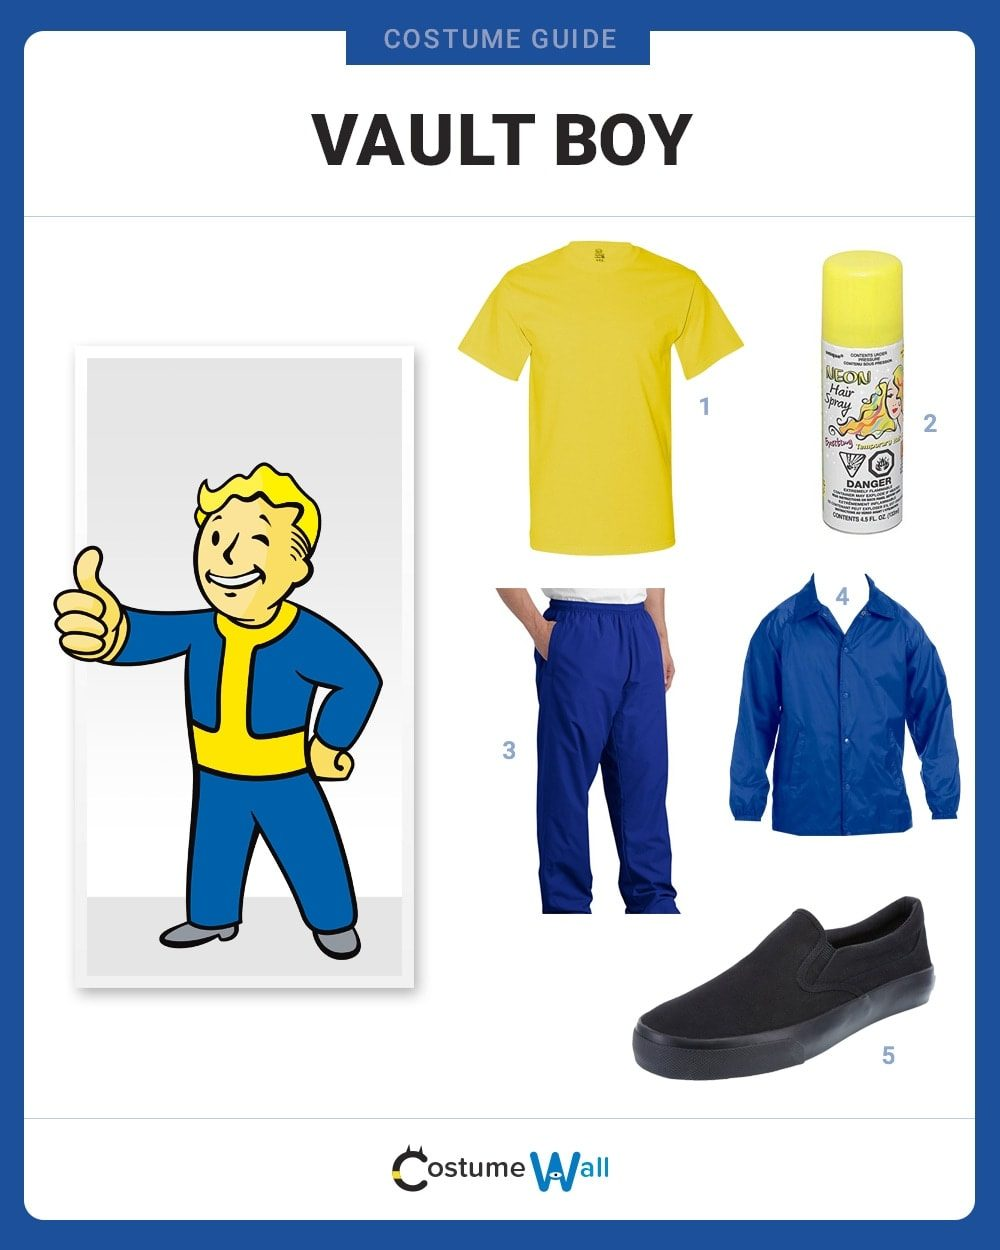 Vault Boy Costume Guide